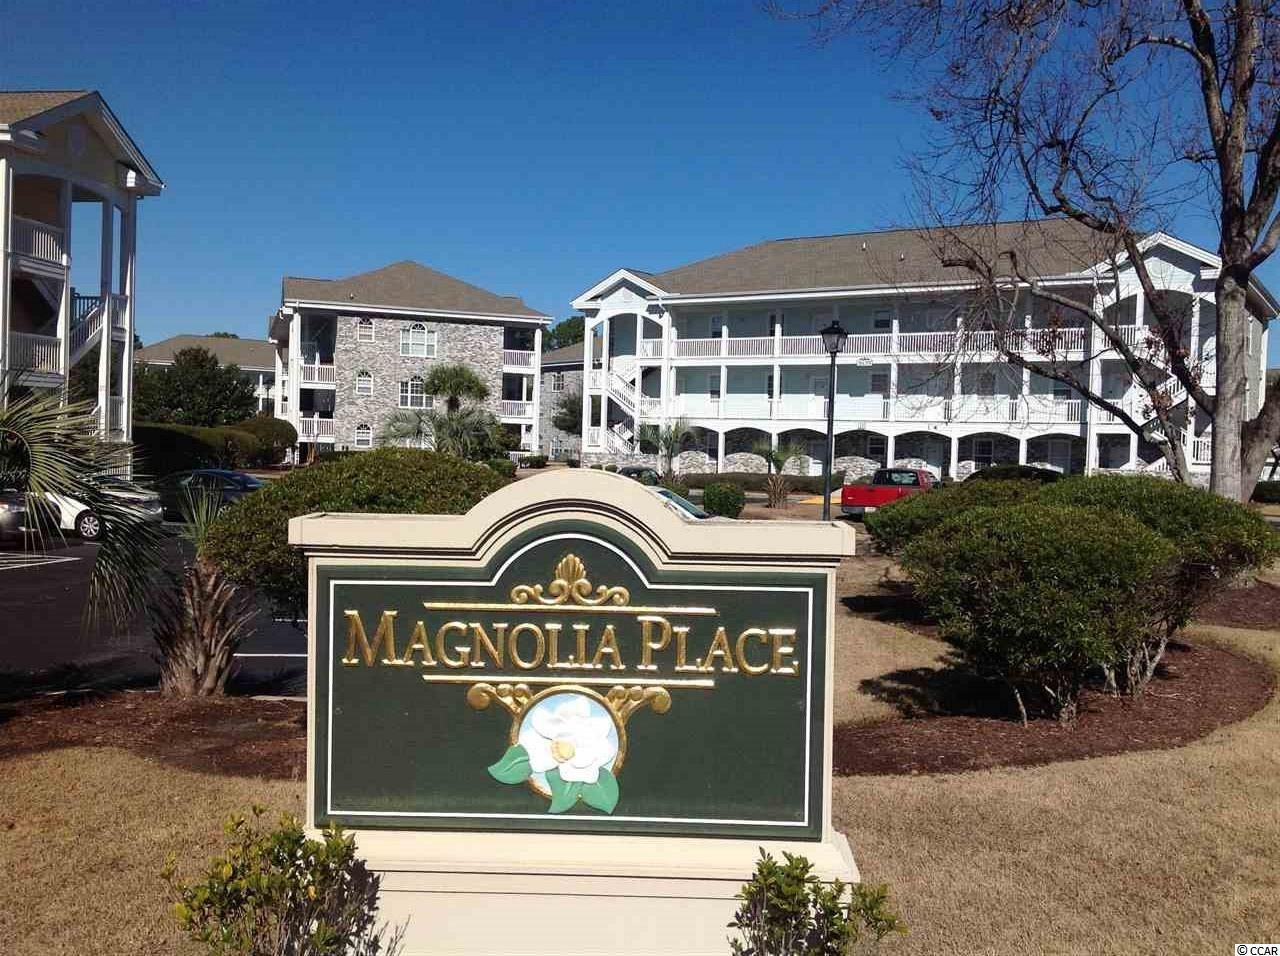 Condo for sale at magnolia place in myrtle beach south - 5 bedroom condos in myrtle beach sc ...